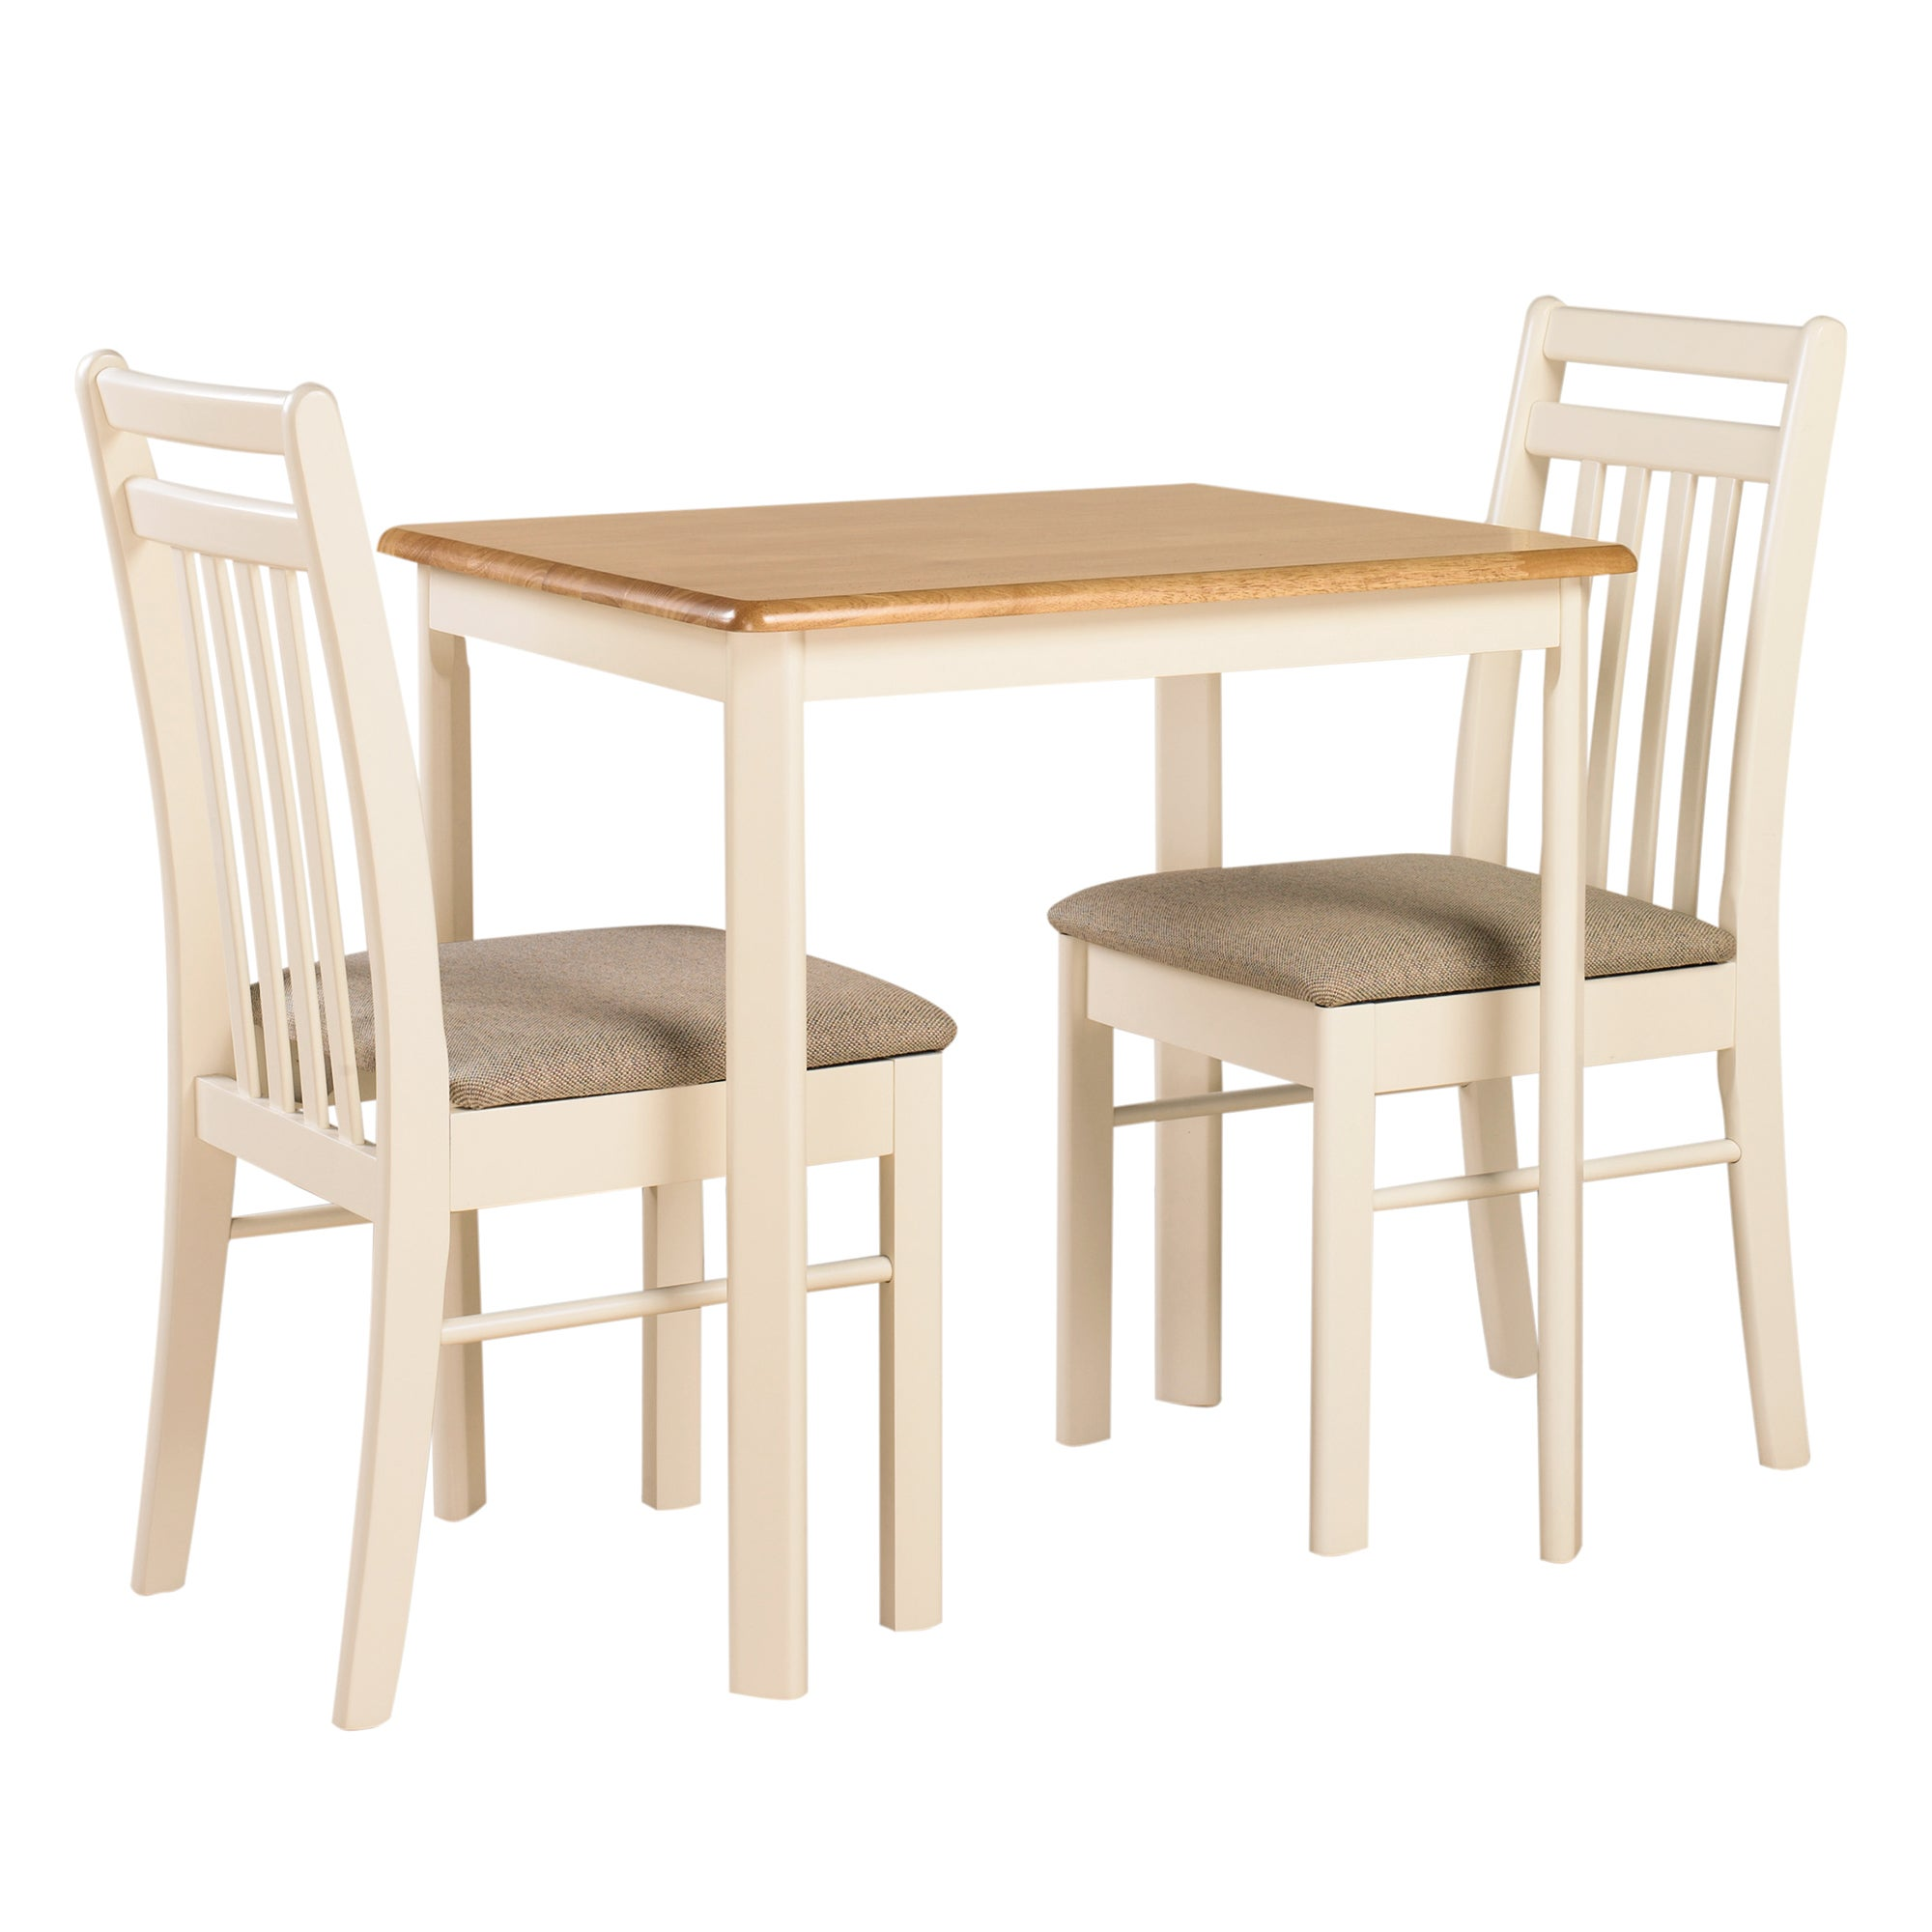 cotswold ivory round table and chairs cream featuring a natural wood